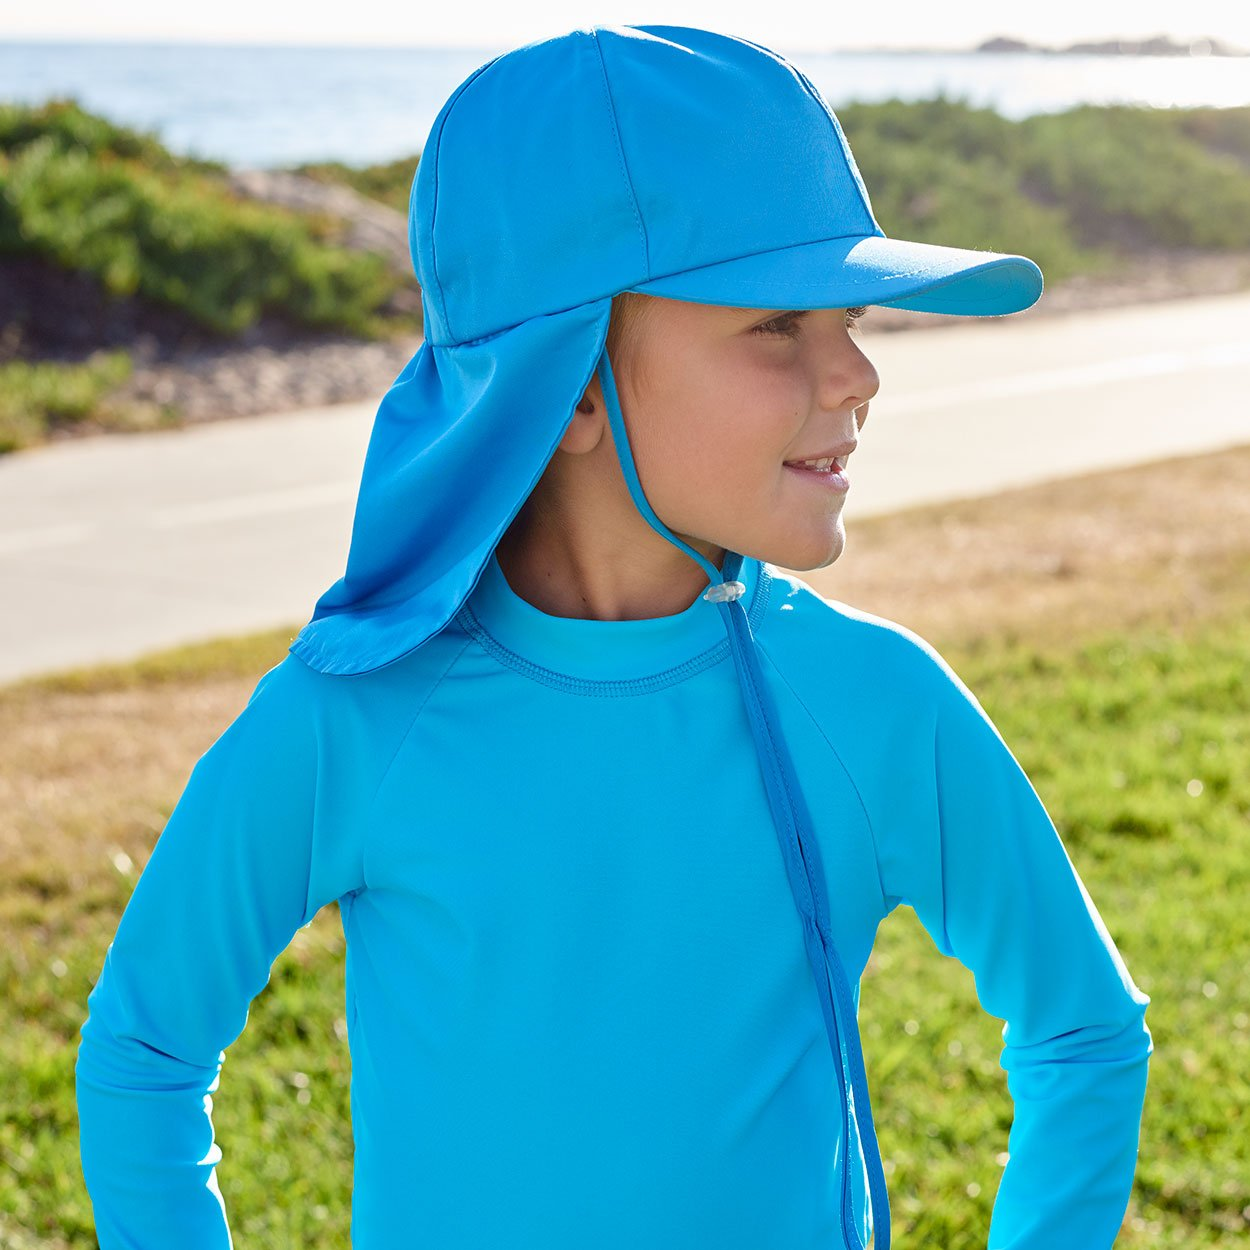 Kids Blue Legionnaire Sun Hat Upf 50 Size S Xl Boy Looking Away Wearing Blue Hat on the Park Sunpoplife